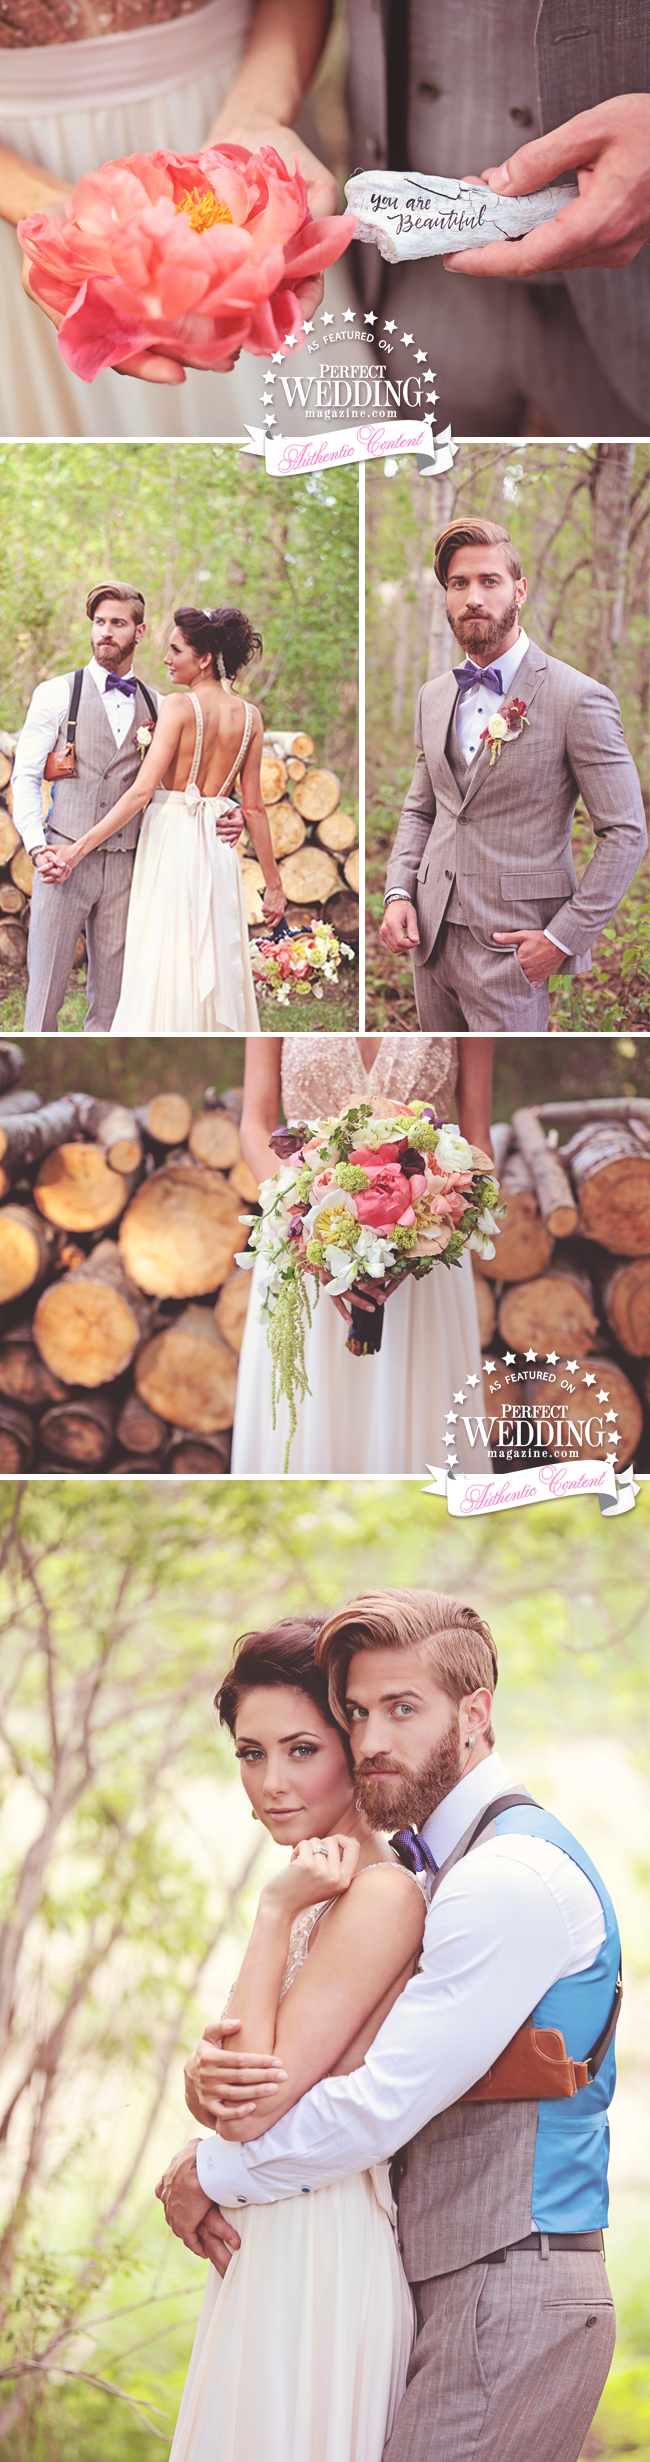 QUEEN OF THE FOREST, Wedding Decor, Perfect Wedding Magazine, Forest Decor Inspiration, Flowers, Wedding Cake, Bride in the Forest, Fashion, Bridal, Eternal Reflections Photography, JoyFoley Weddings, Fabloomosity, The Art of the Cake, Calgary Weddings, Kingdom Of Lovers